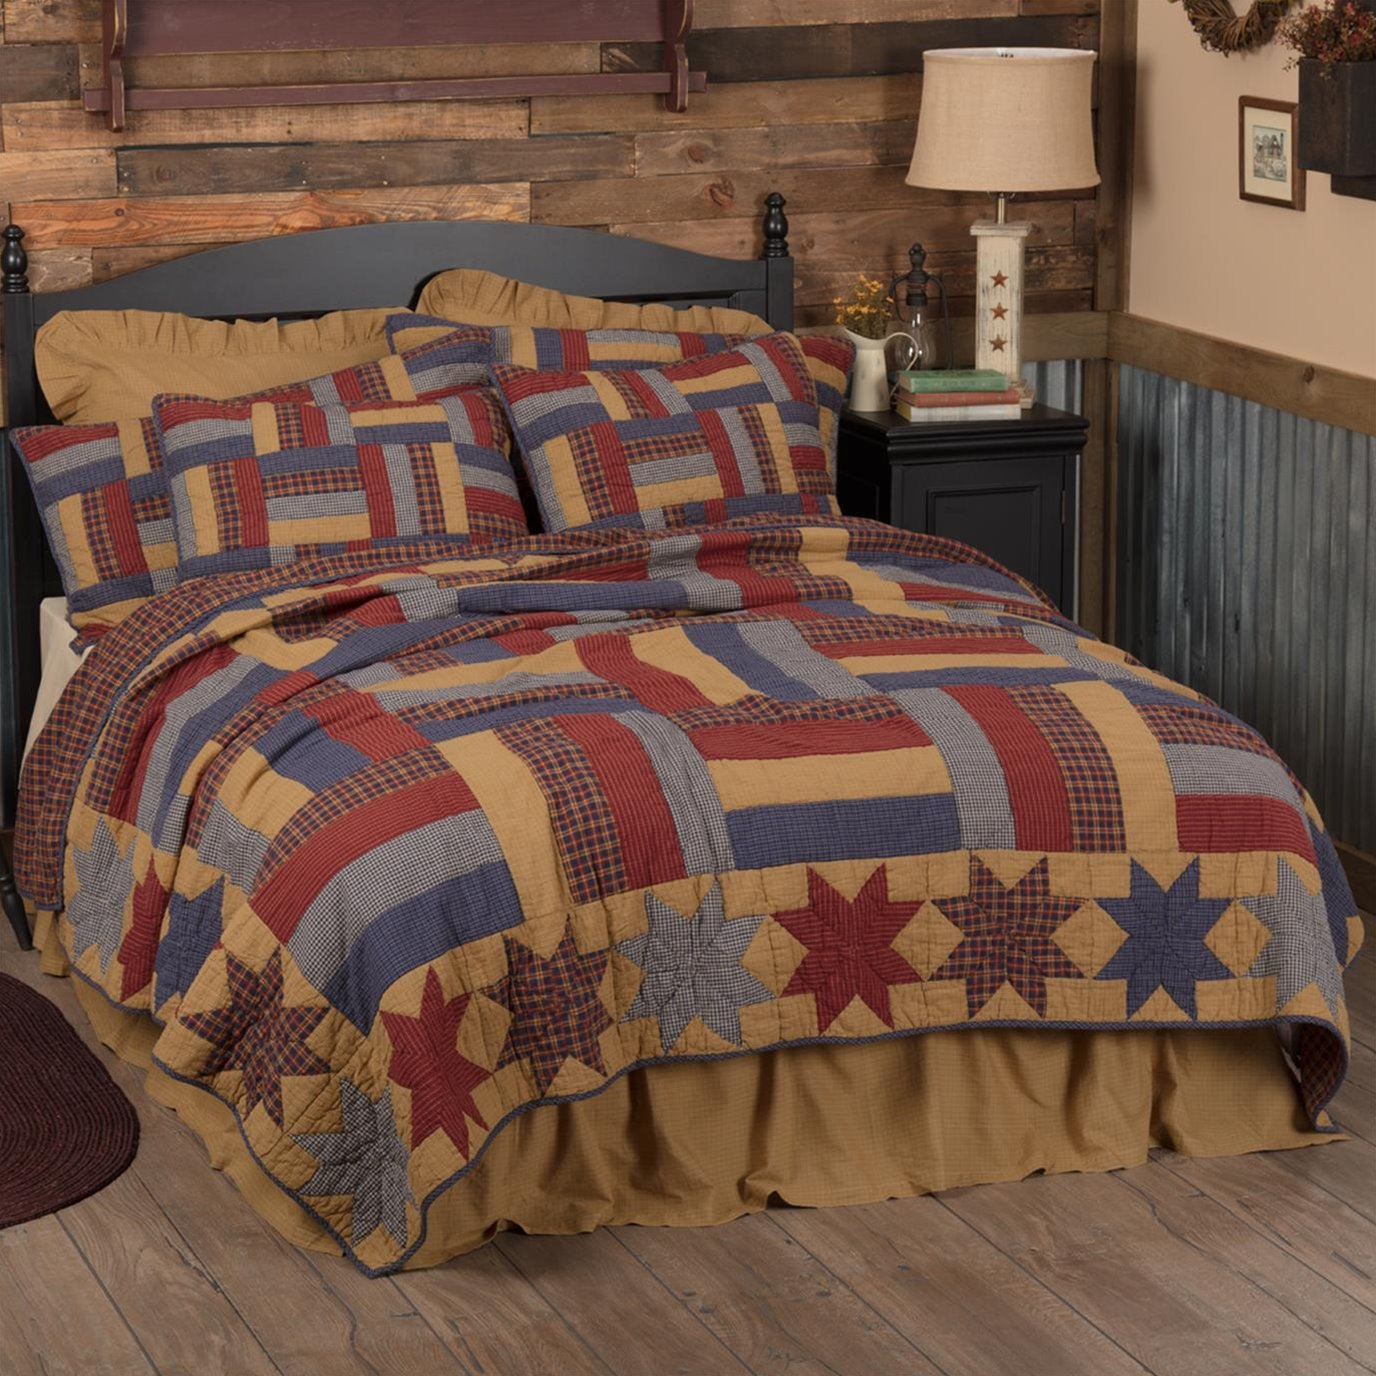 National Quilt Museum Kindred Stars and Bars Luxury King Quilt 120Wx105L